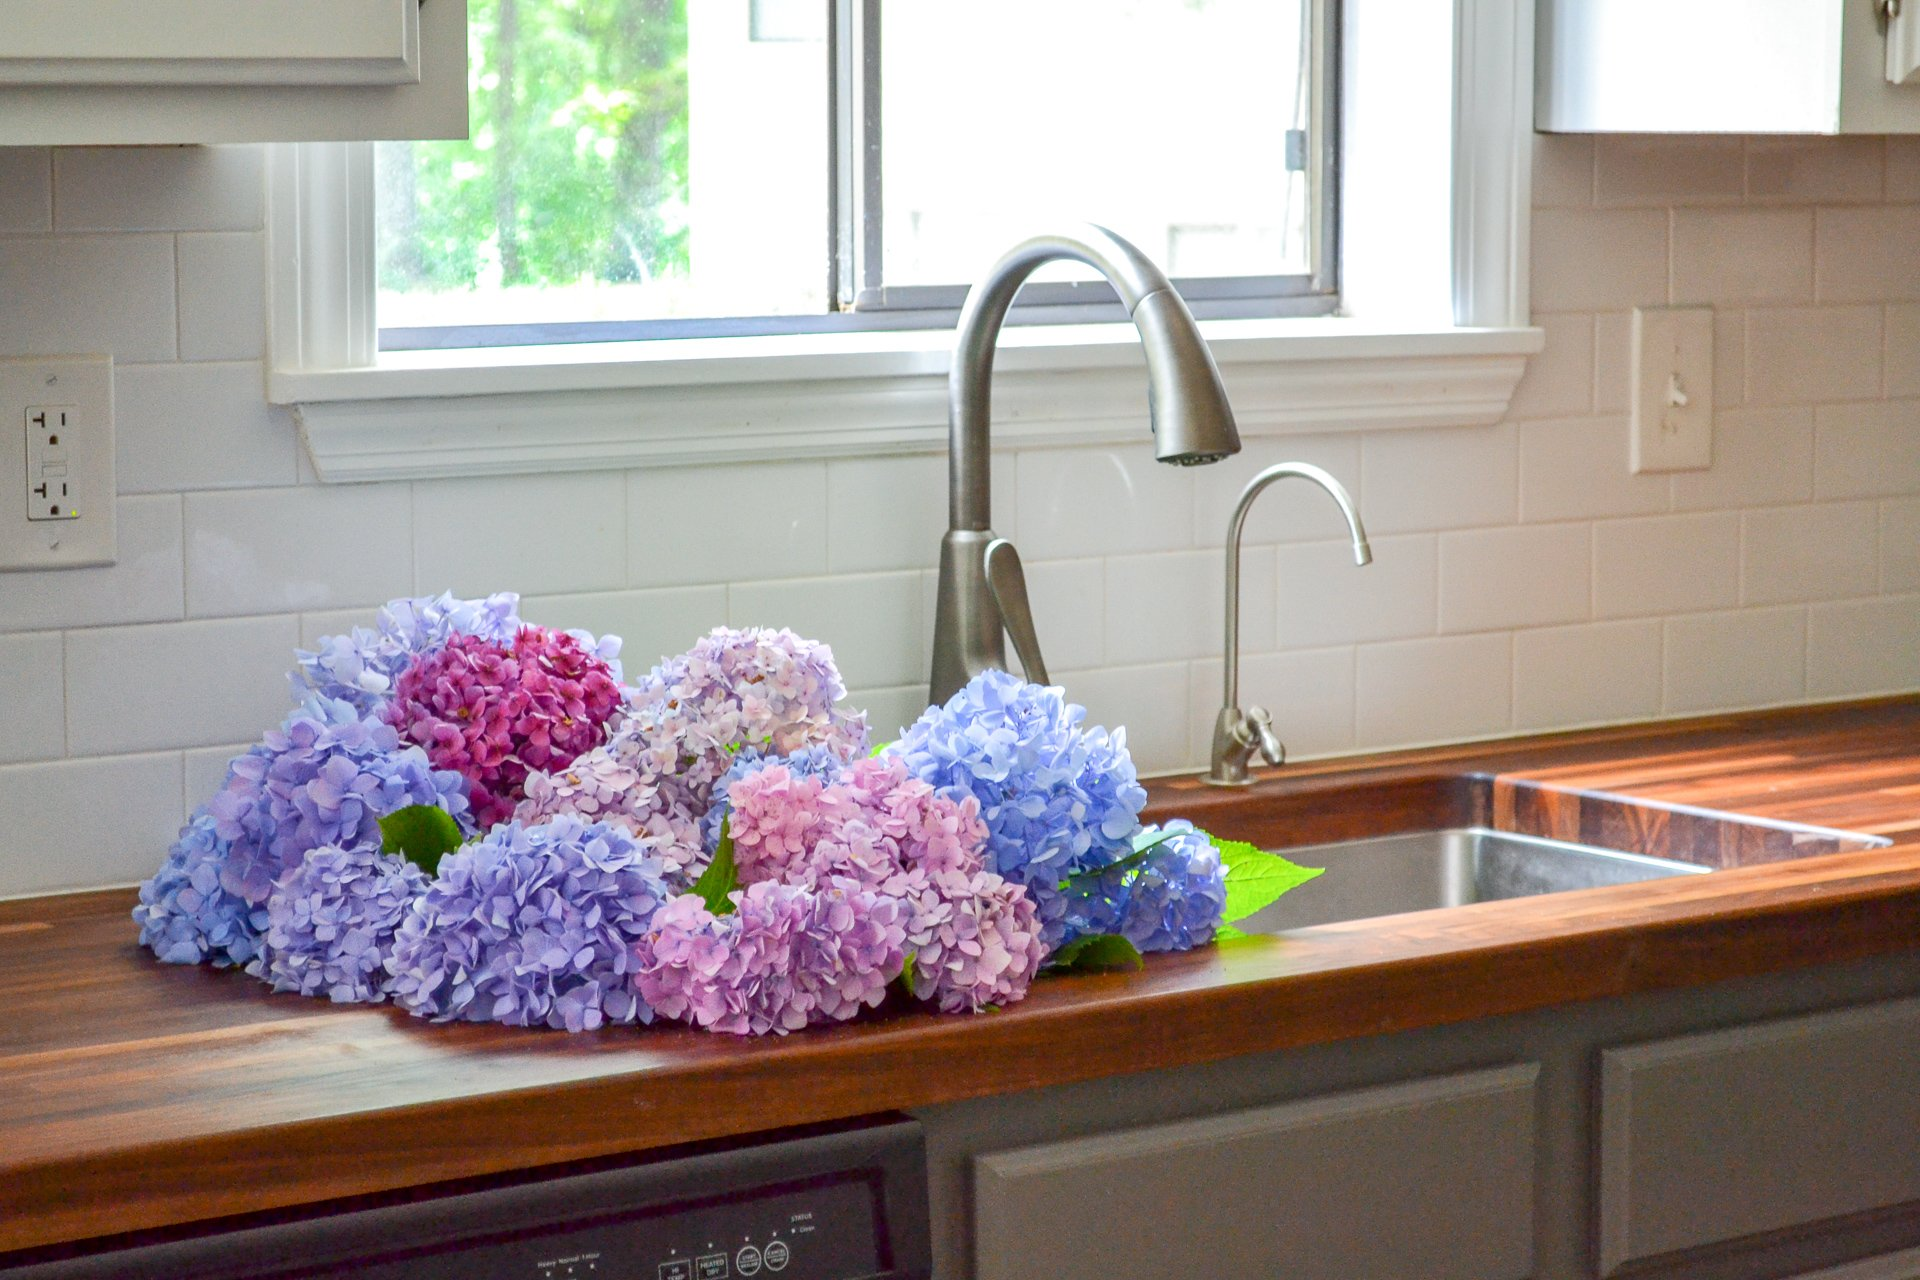 cluster of hydrangeas in sink